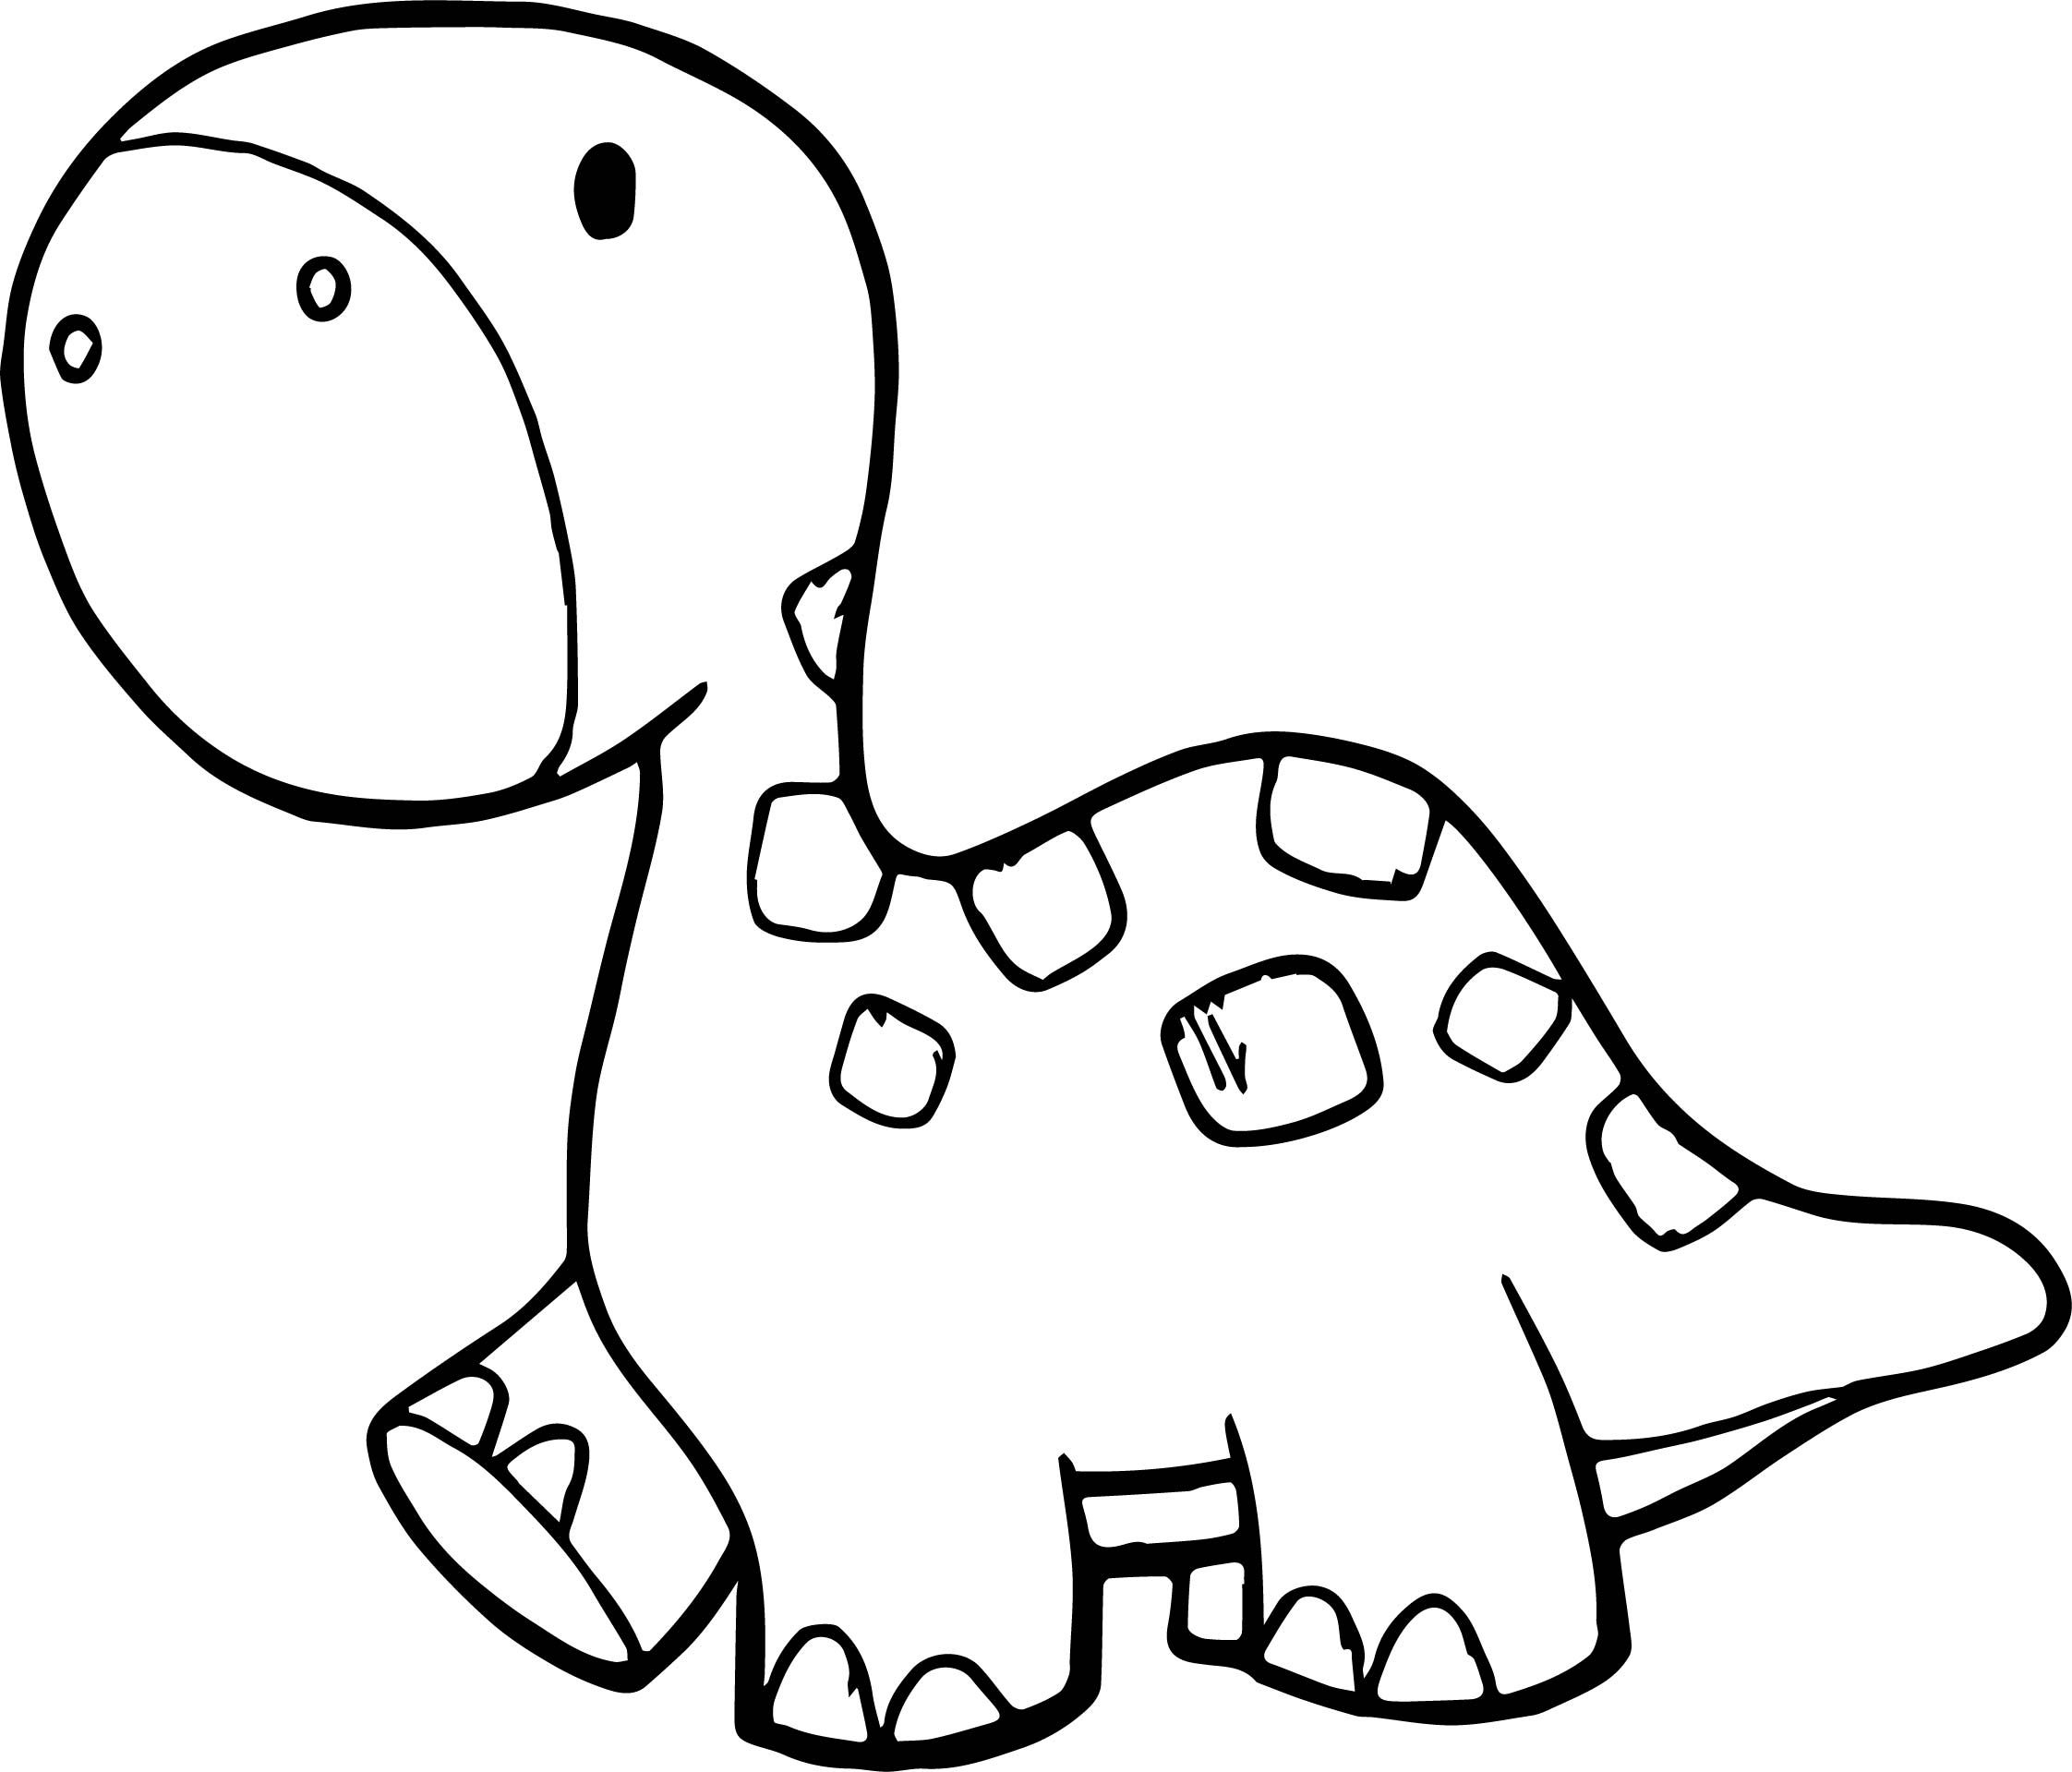 Awesome Walking Smaller Dinosaur Coloring Page Dinosaur Coloring Pages Dinosaur Coloring Coloring Pages